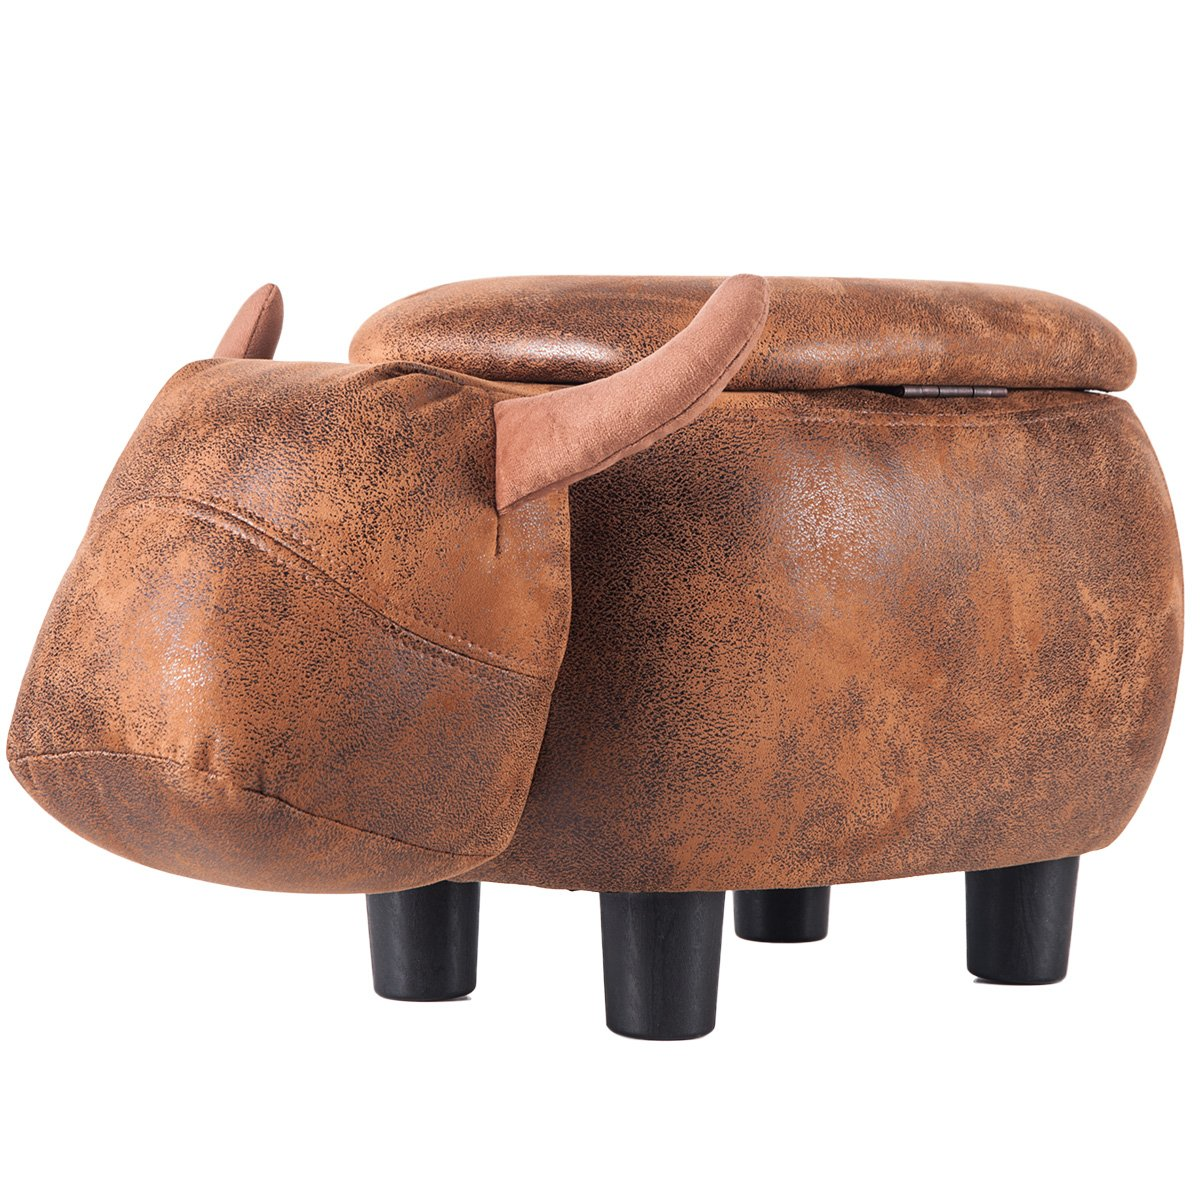 Merax Have-Fun Series Upholstered Ride-on Storage Ottoman Footrest Stool with Vivid Adorable Animal Shape (Brown Buffalo)